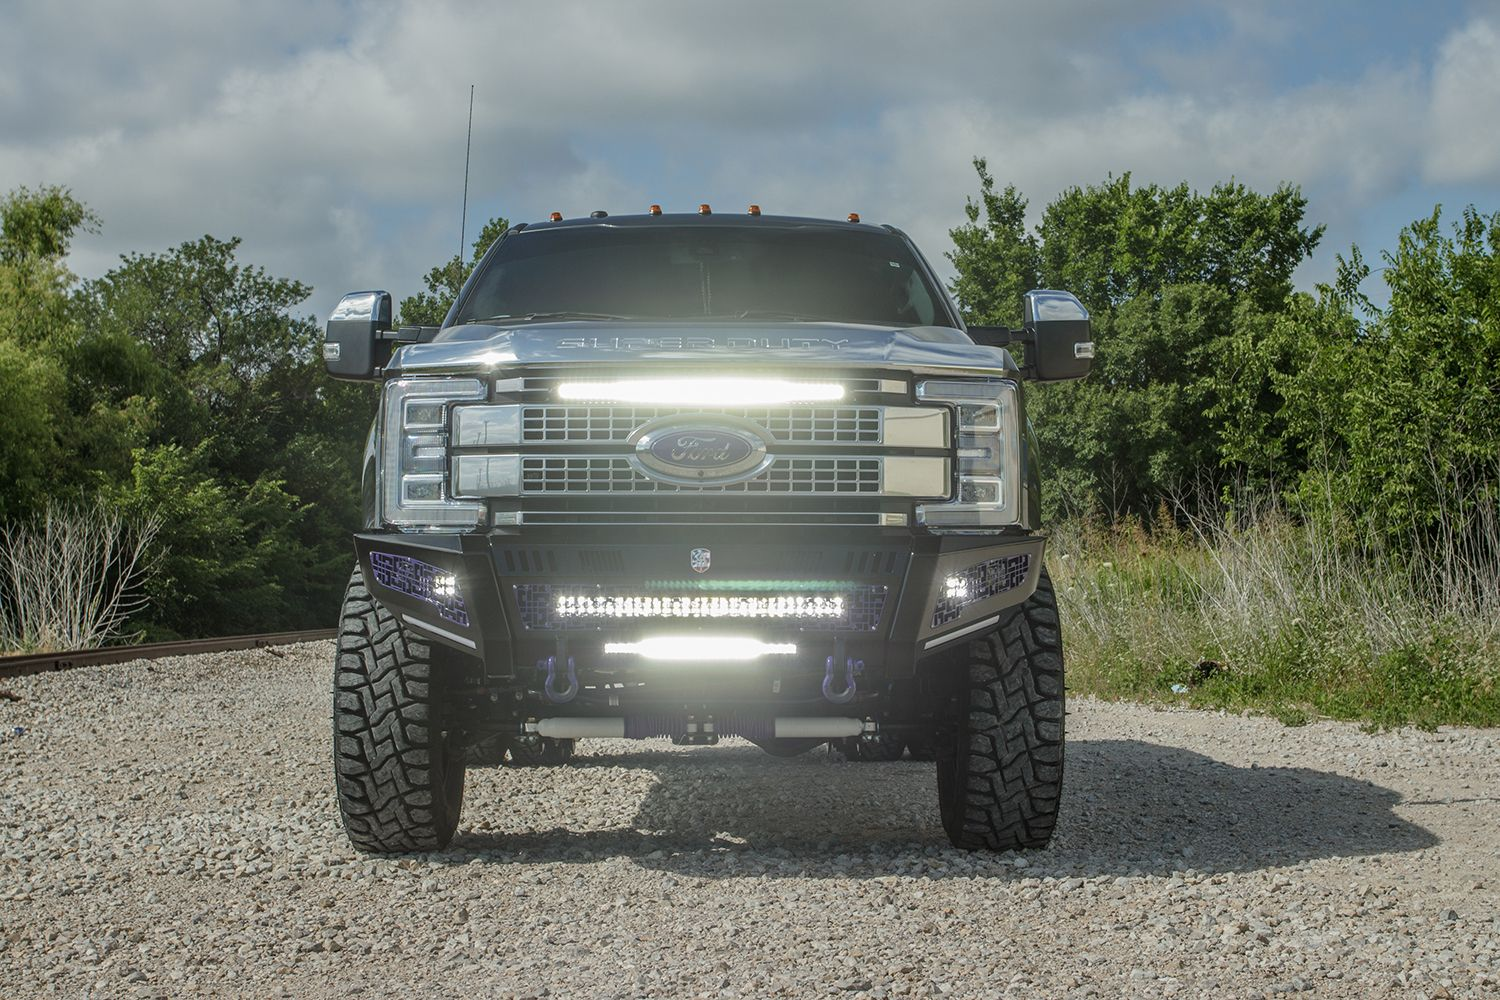 medium resolution of road armor identity bumpers on a lifted gray ford f350 dually with custom rigid led light bars